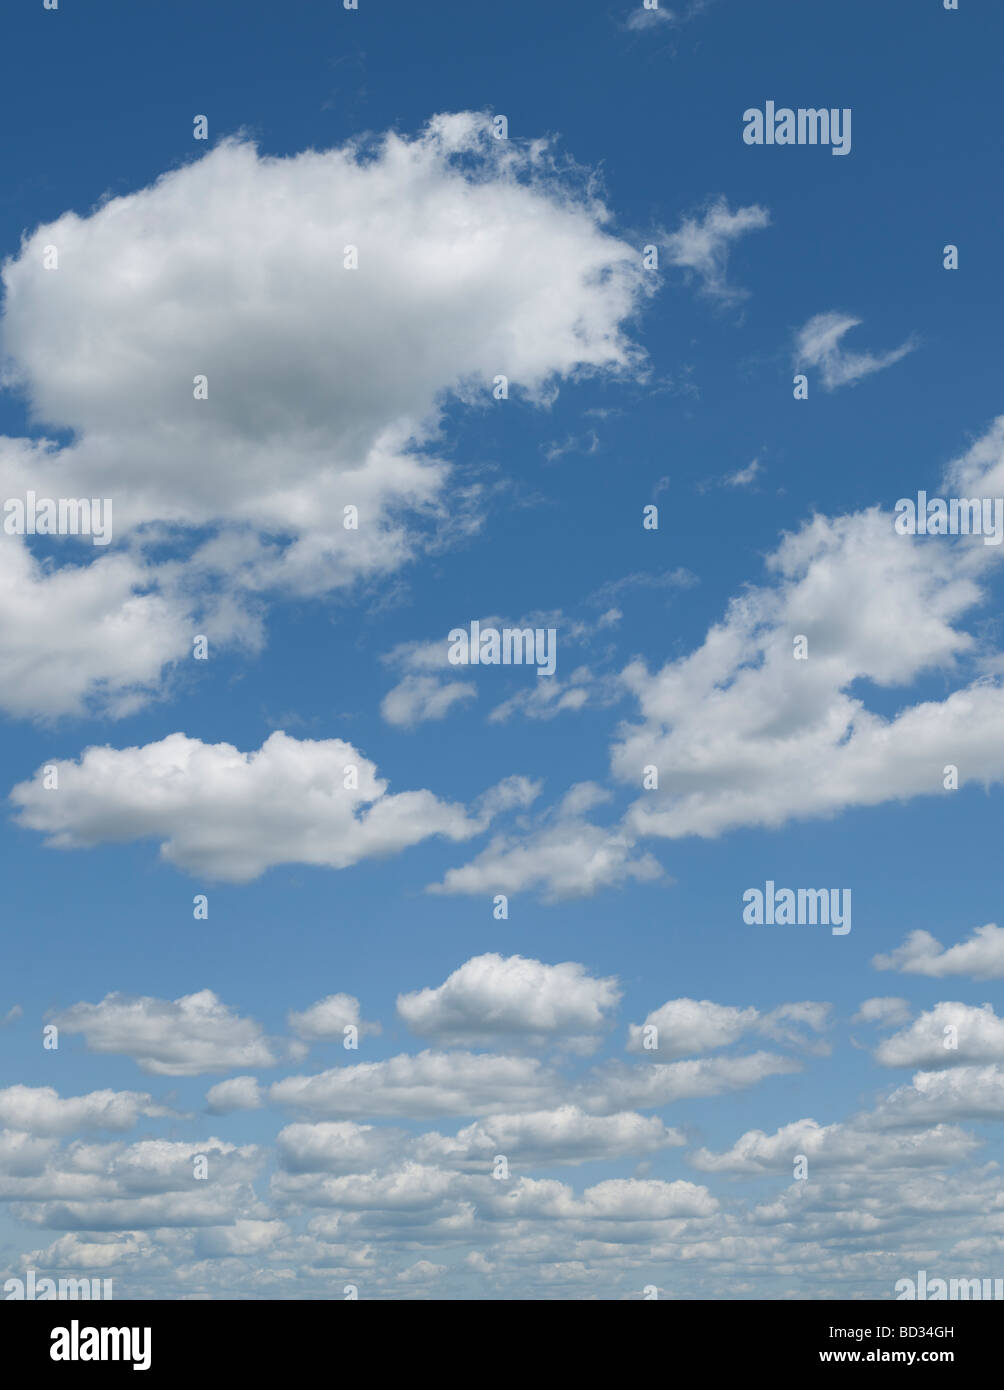 Blue sky puffy clouds - Stock Image